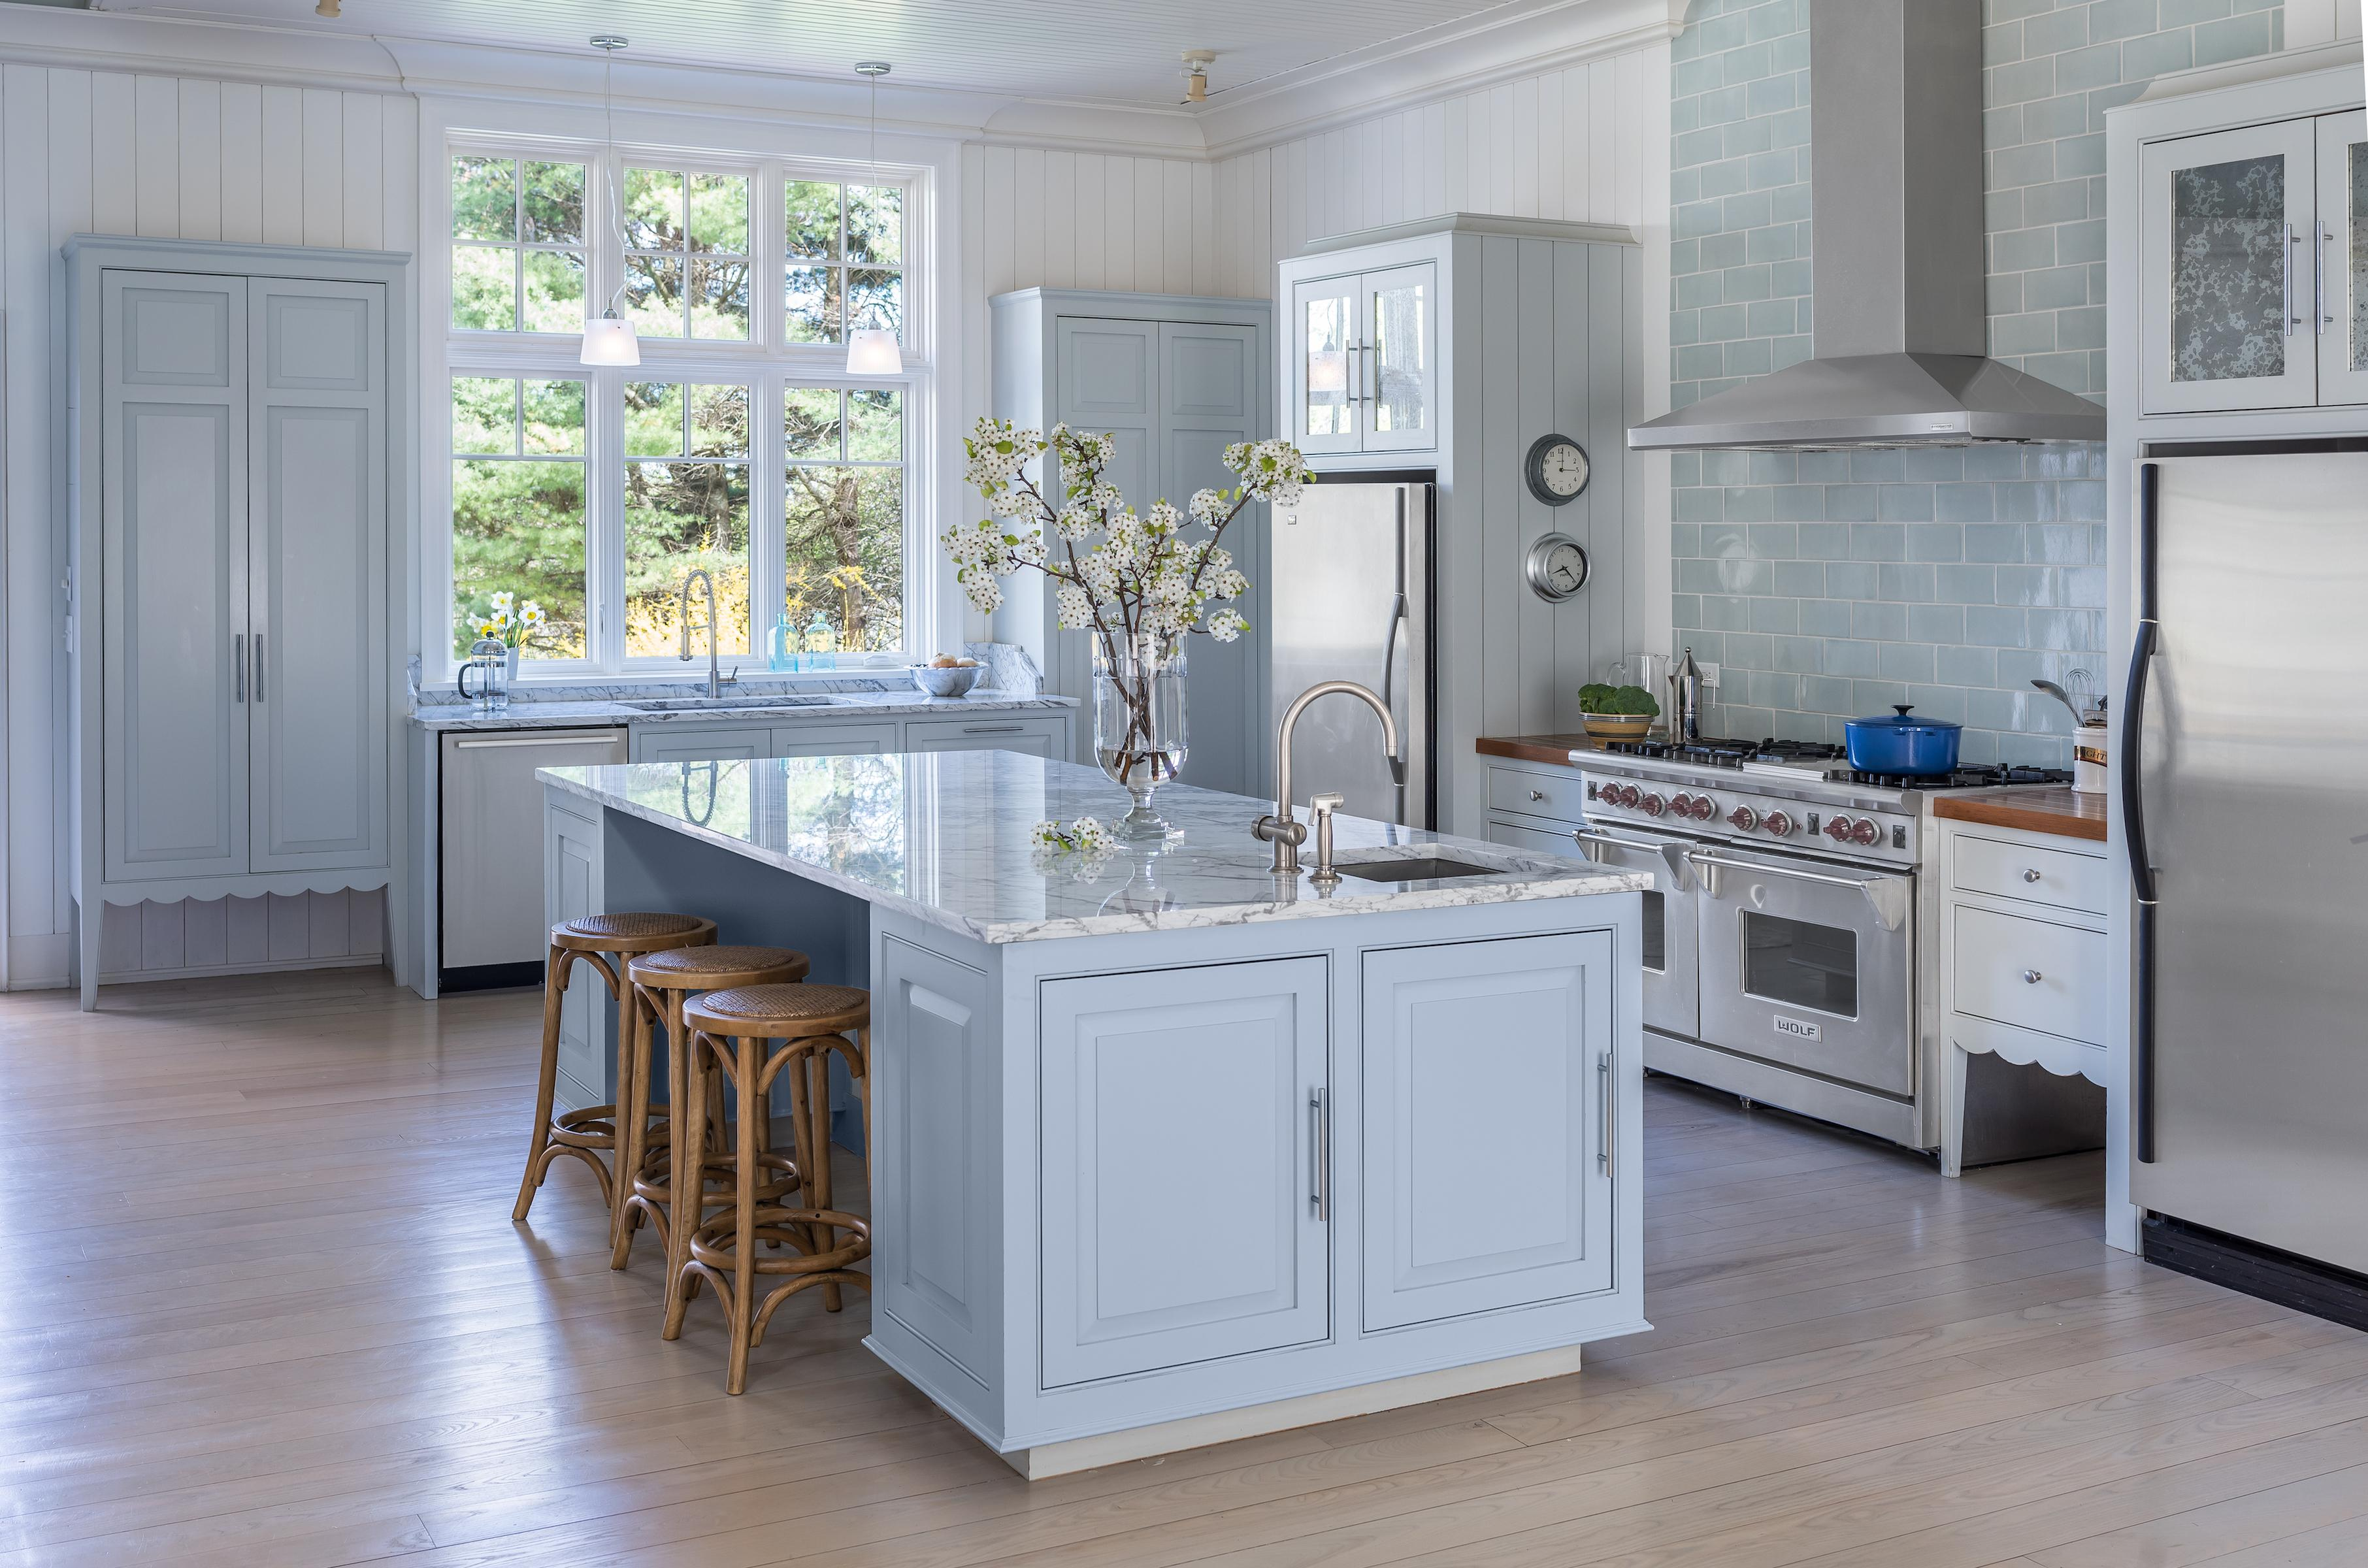 Painting Kitchen Cabinets Light Blue Kitchen At Luxe Barn Falmouth By Banks Design Associates